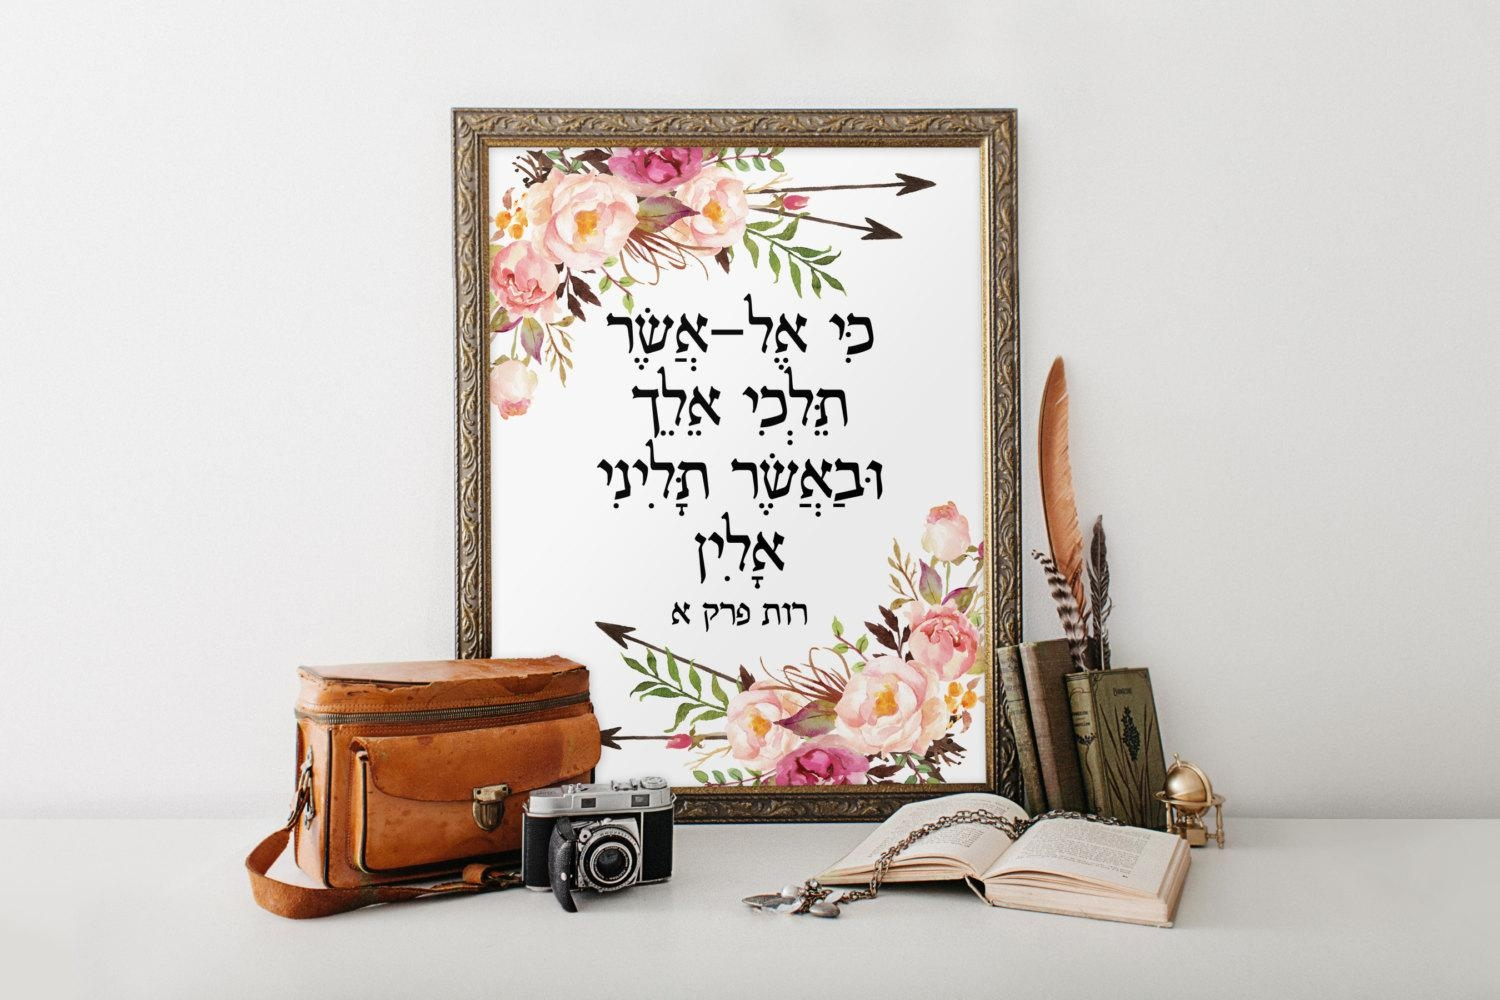 Jewish Wall Art Nursery Bible Verse Ruth 1:16 Judaica Wall Pertaining To Nursery Bible Verses Wall Decals (Image 13 of 20)